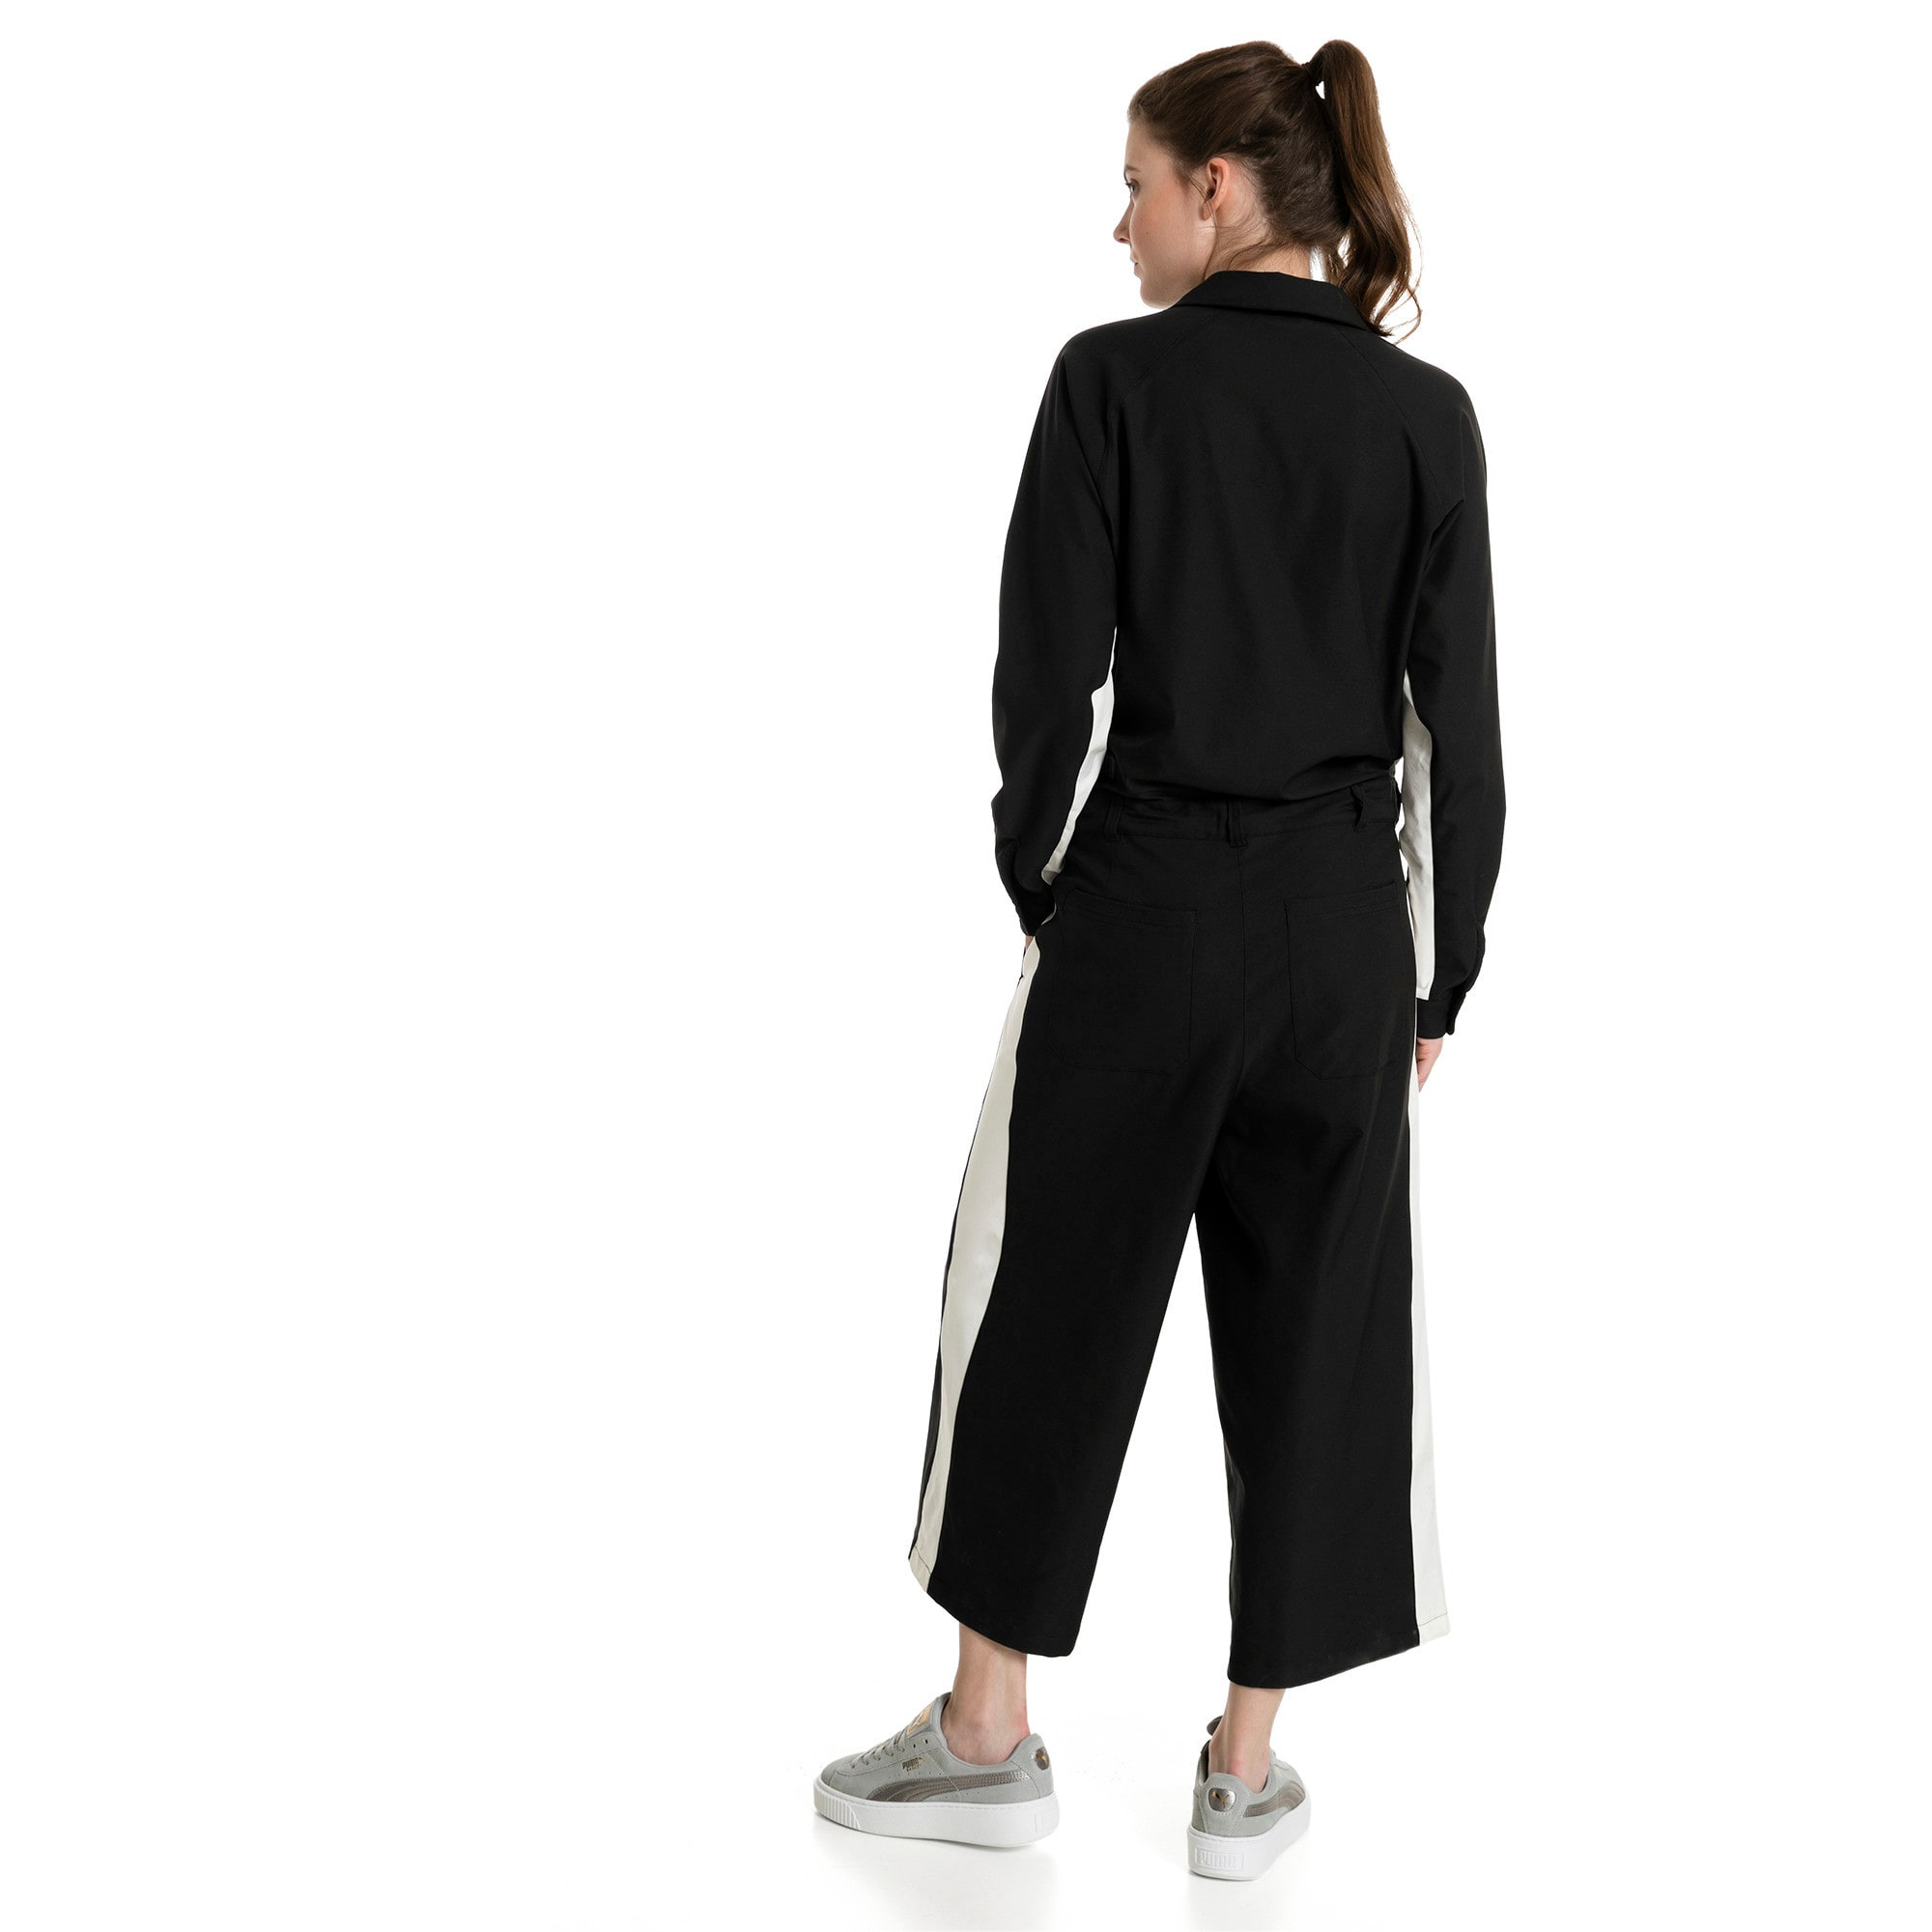 Thumbnail 4 of True Archive Women's Worker Overall, Puma Black, medium-IND